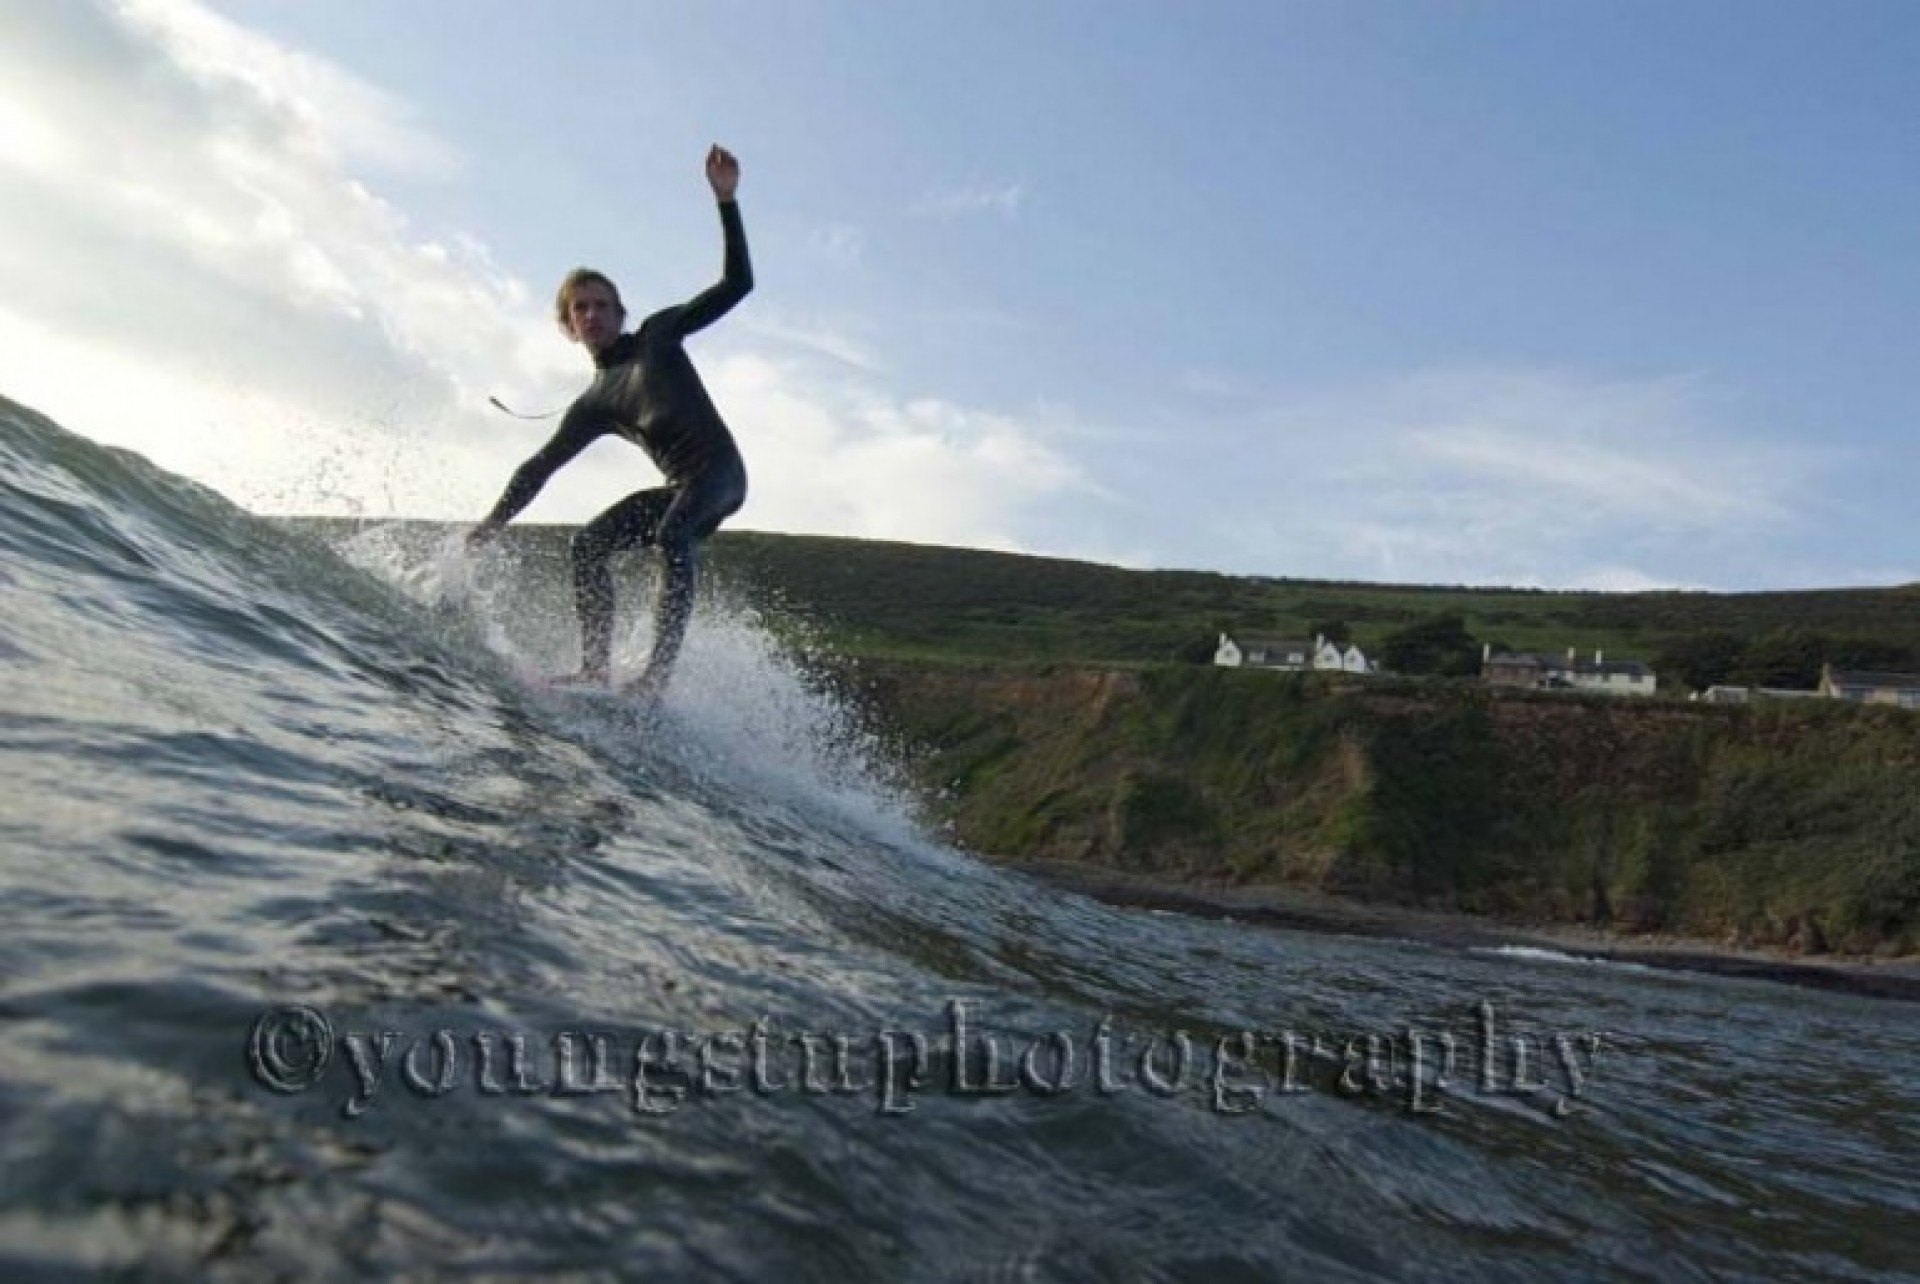 Youngstu's photo of Croyde Beach